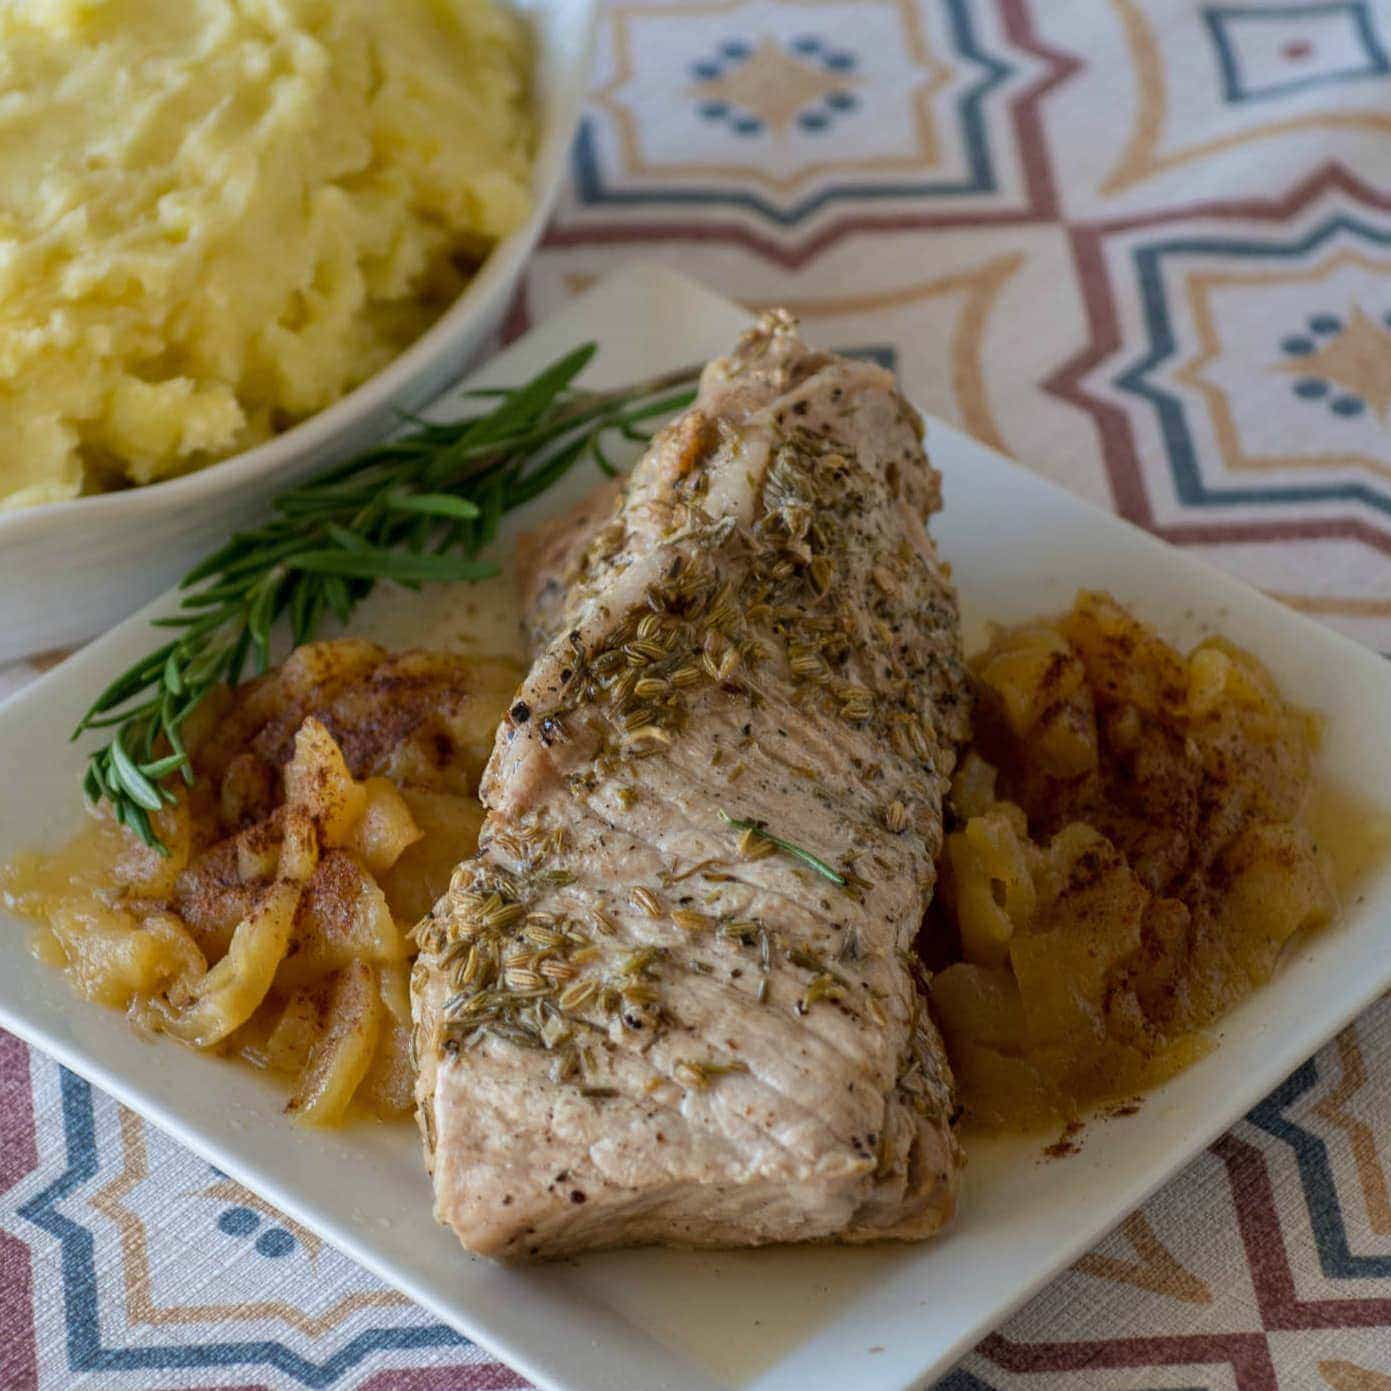 Instant Pot Pork Loin with Apples and Mashed Potatoes